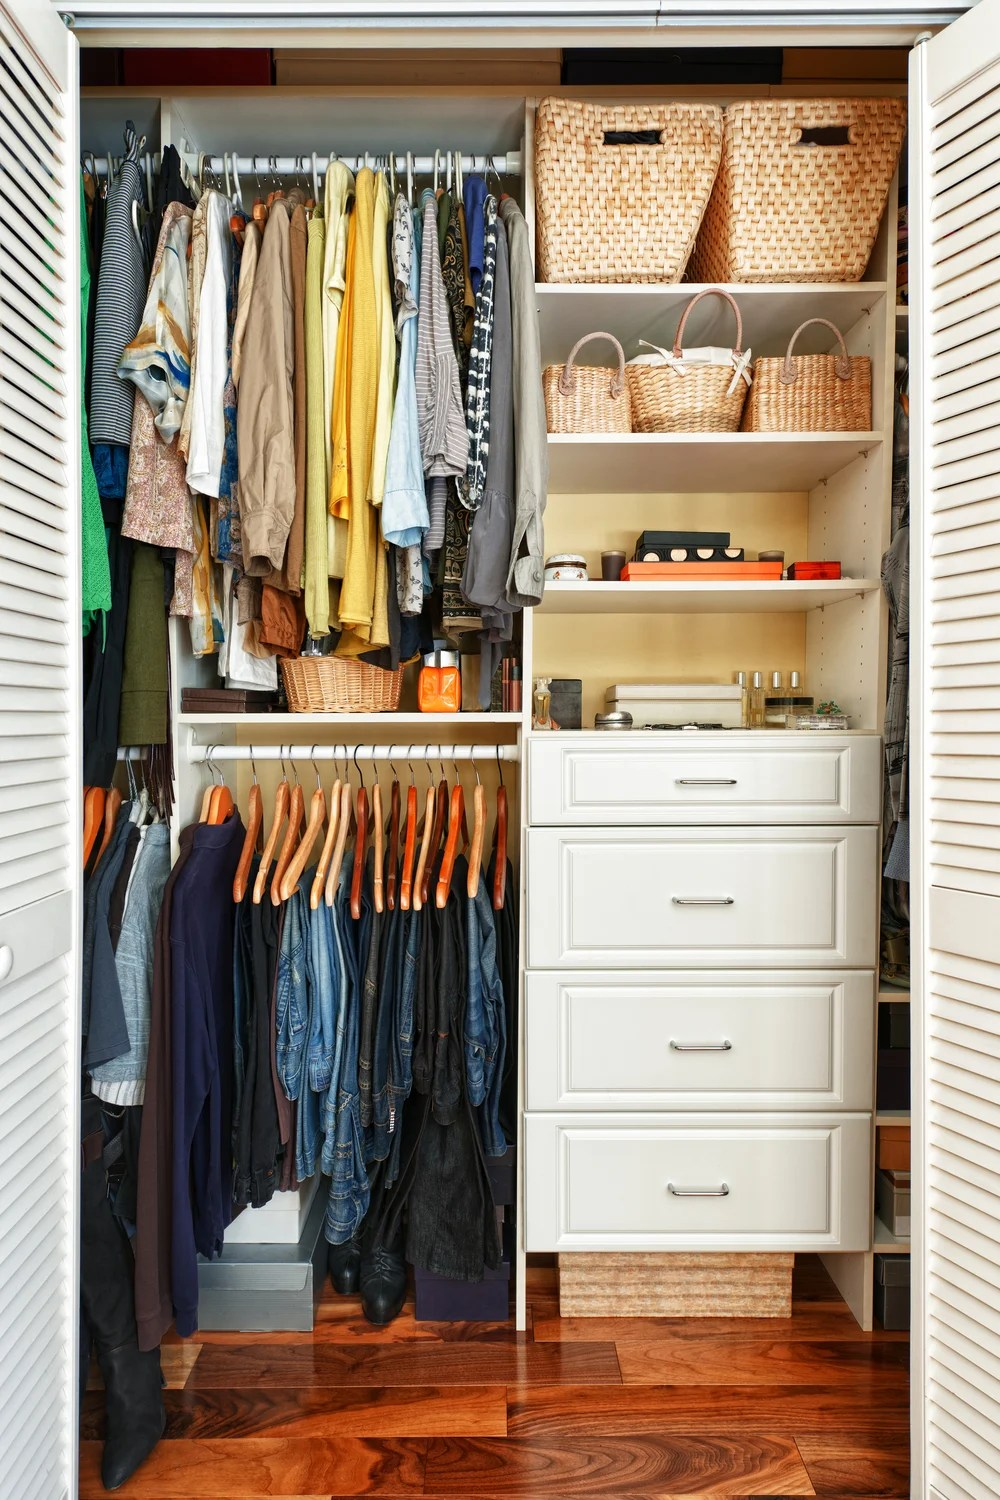 Closet Organization Seriously Useful Apartment Friendly Closet Organization Ideas For